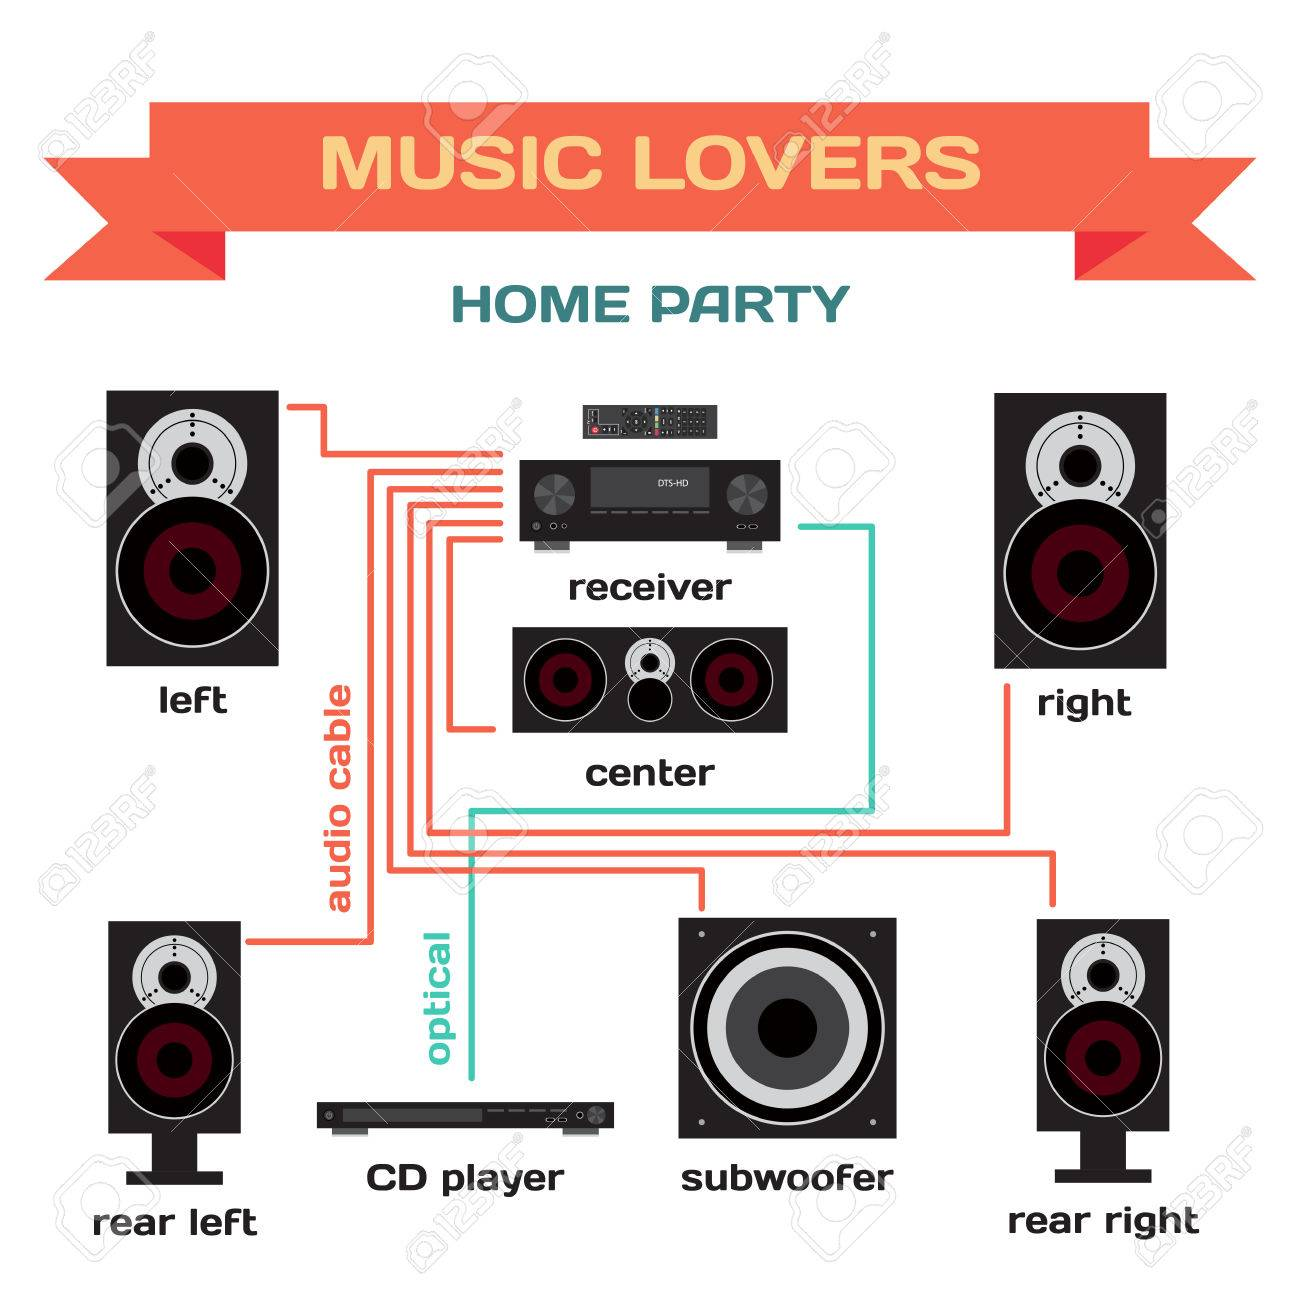 Wiring Home For Music Diagram And Ebooks A Audio System Party Flat Design Connect The Rh 123rf Com Diagrams Basic Dummies